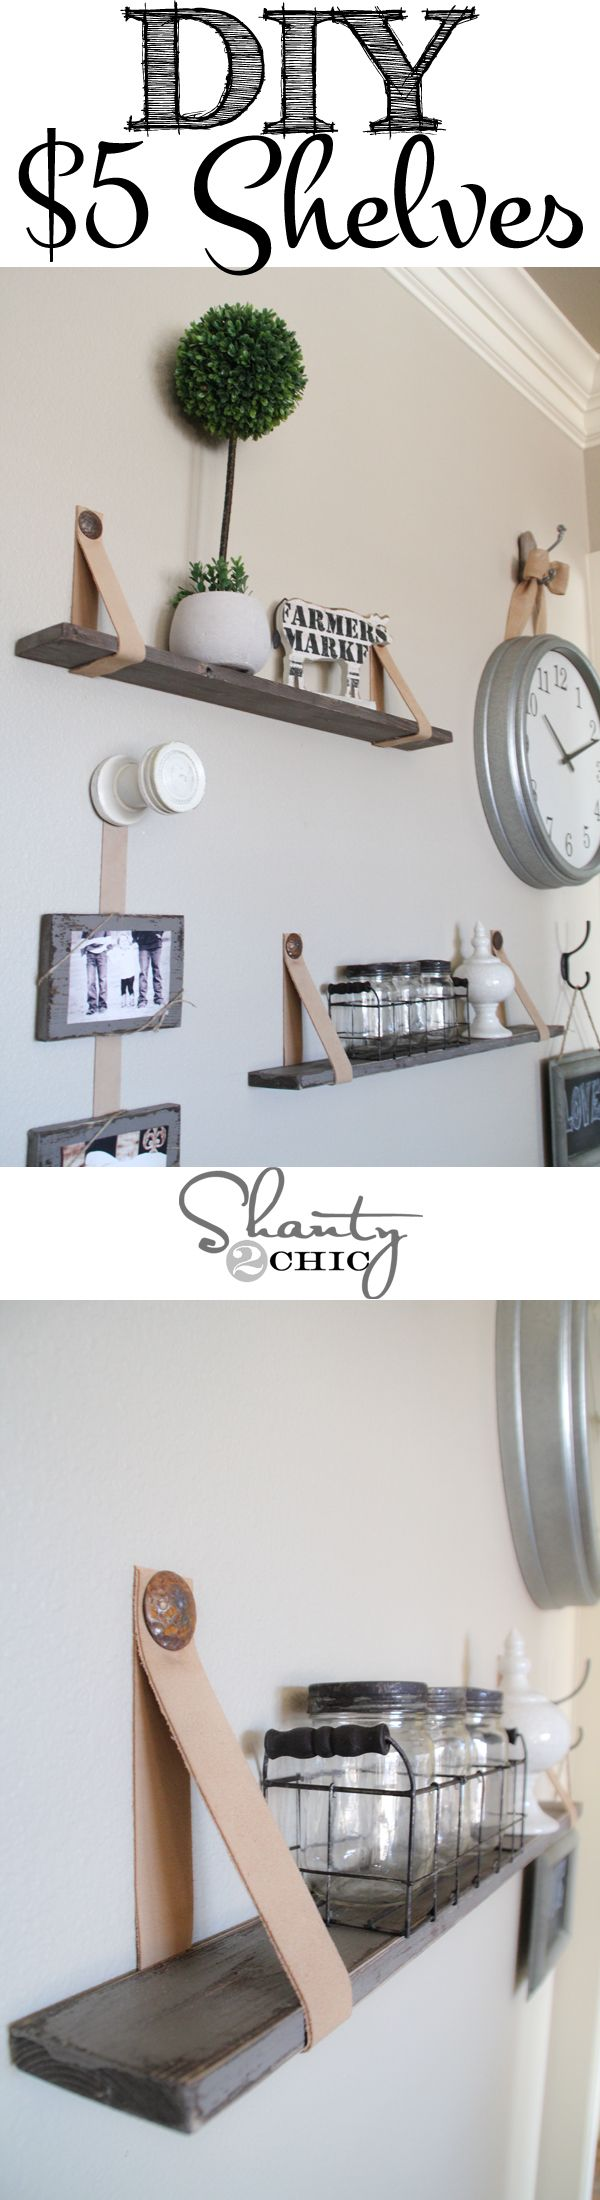 Diy shelves with leather straps shelves shelving ideas and easy